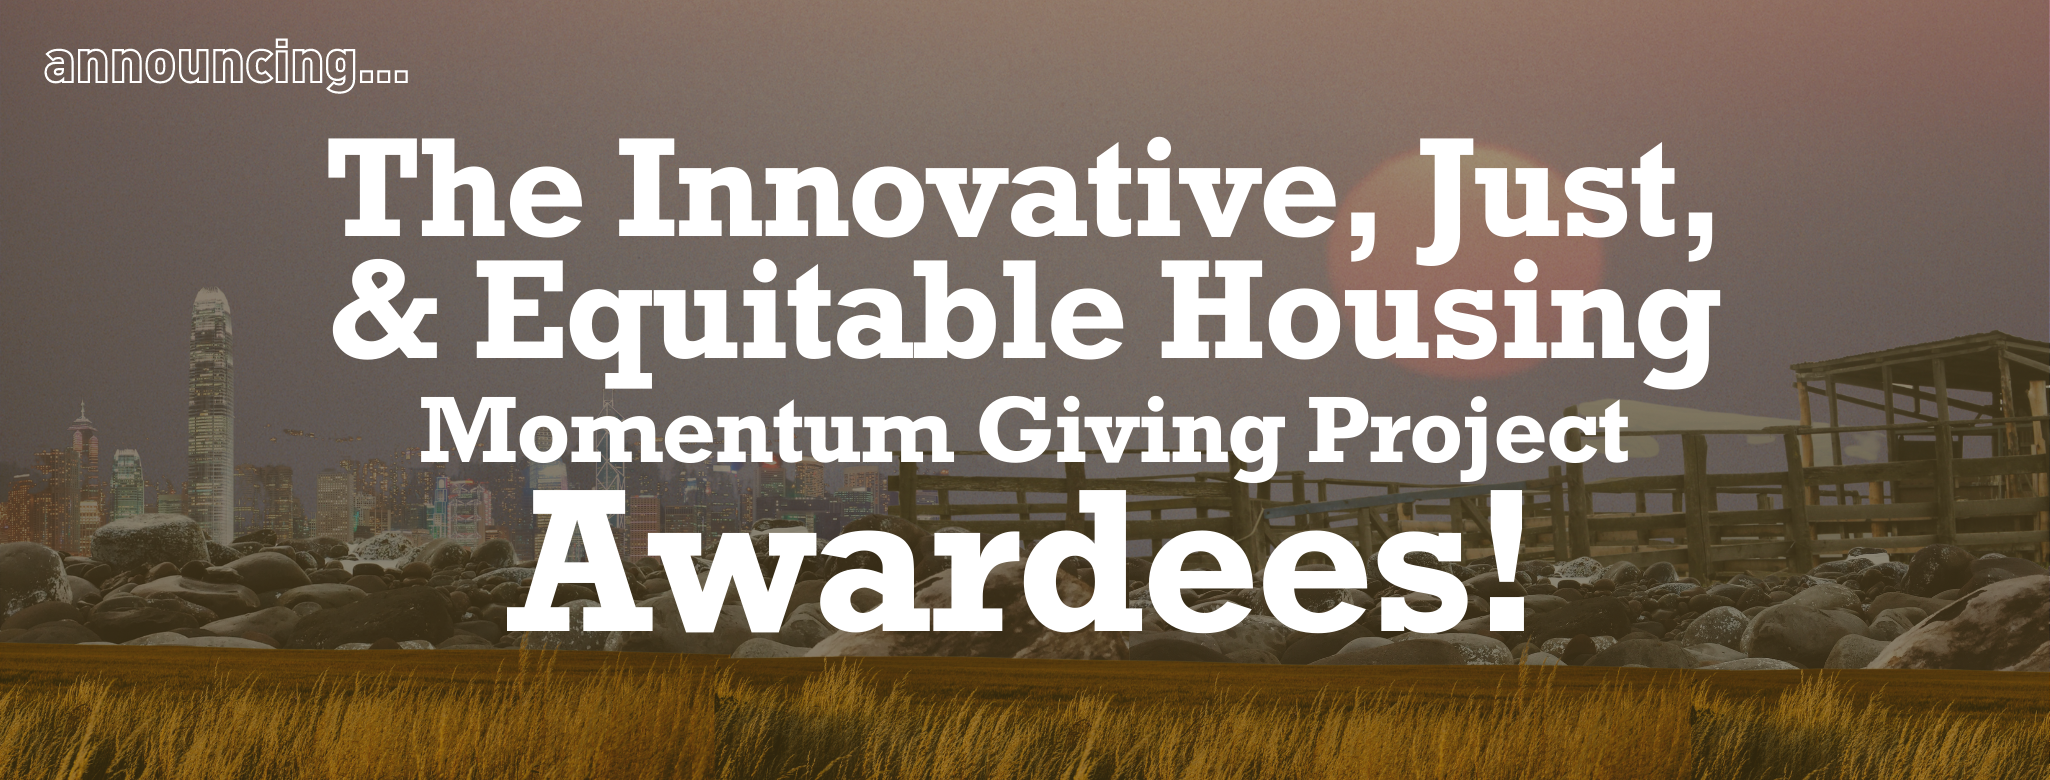 Rectangular banner with a photo collage background depicting rural and urban areas. White text reads Announcing the Innovative Just and Equitable Housing Momentum Giving Project Awardees